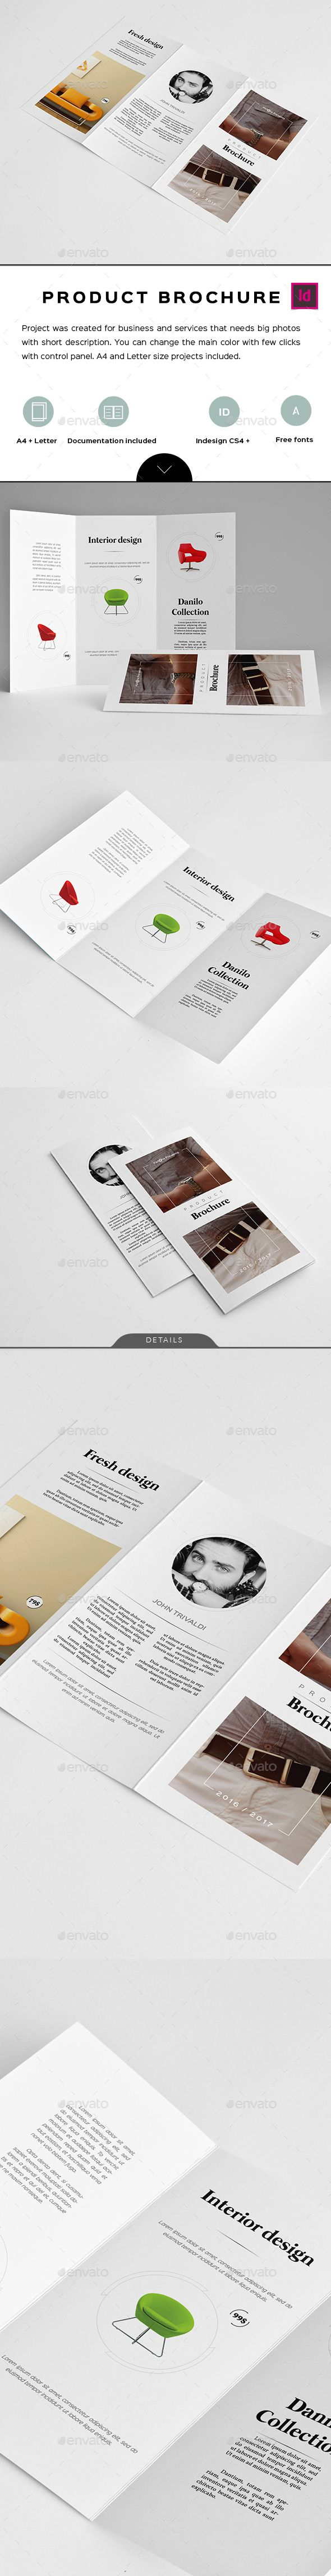 Product Trifold Brochure  — InDesign Template #business #8.5x11 • Download ➝ https://graphicriver.net/item/product-trifold-brochure/18390324?ref=pxcr